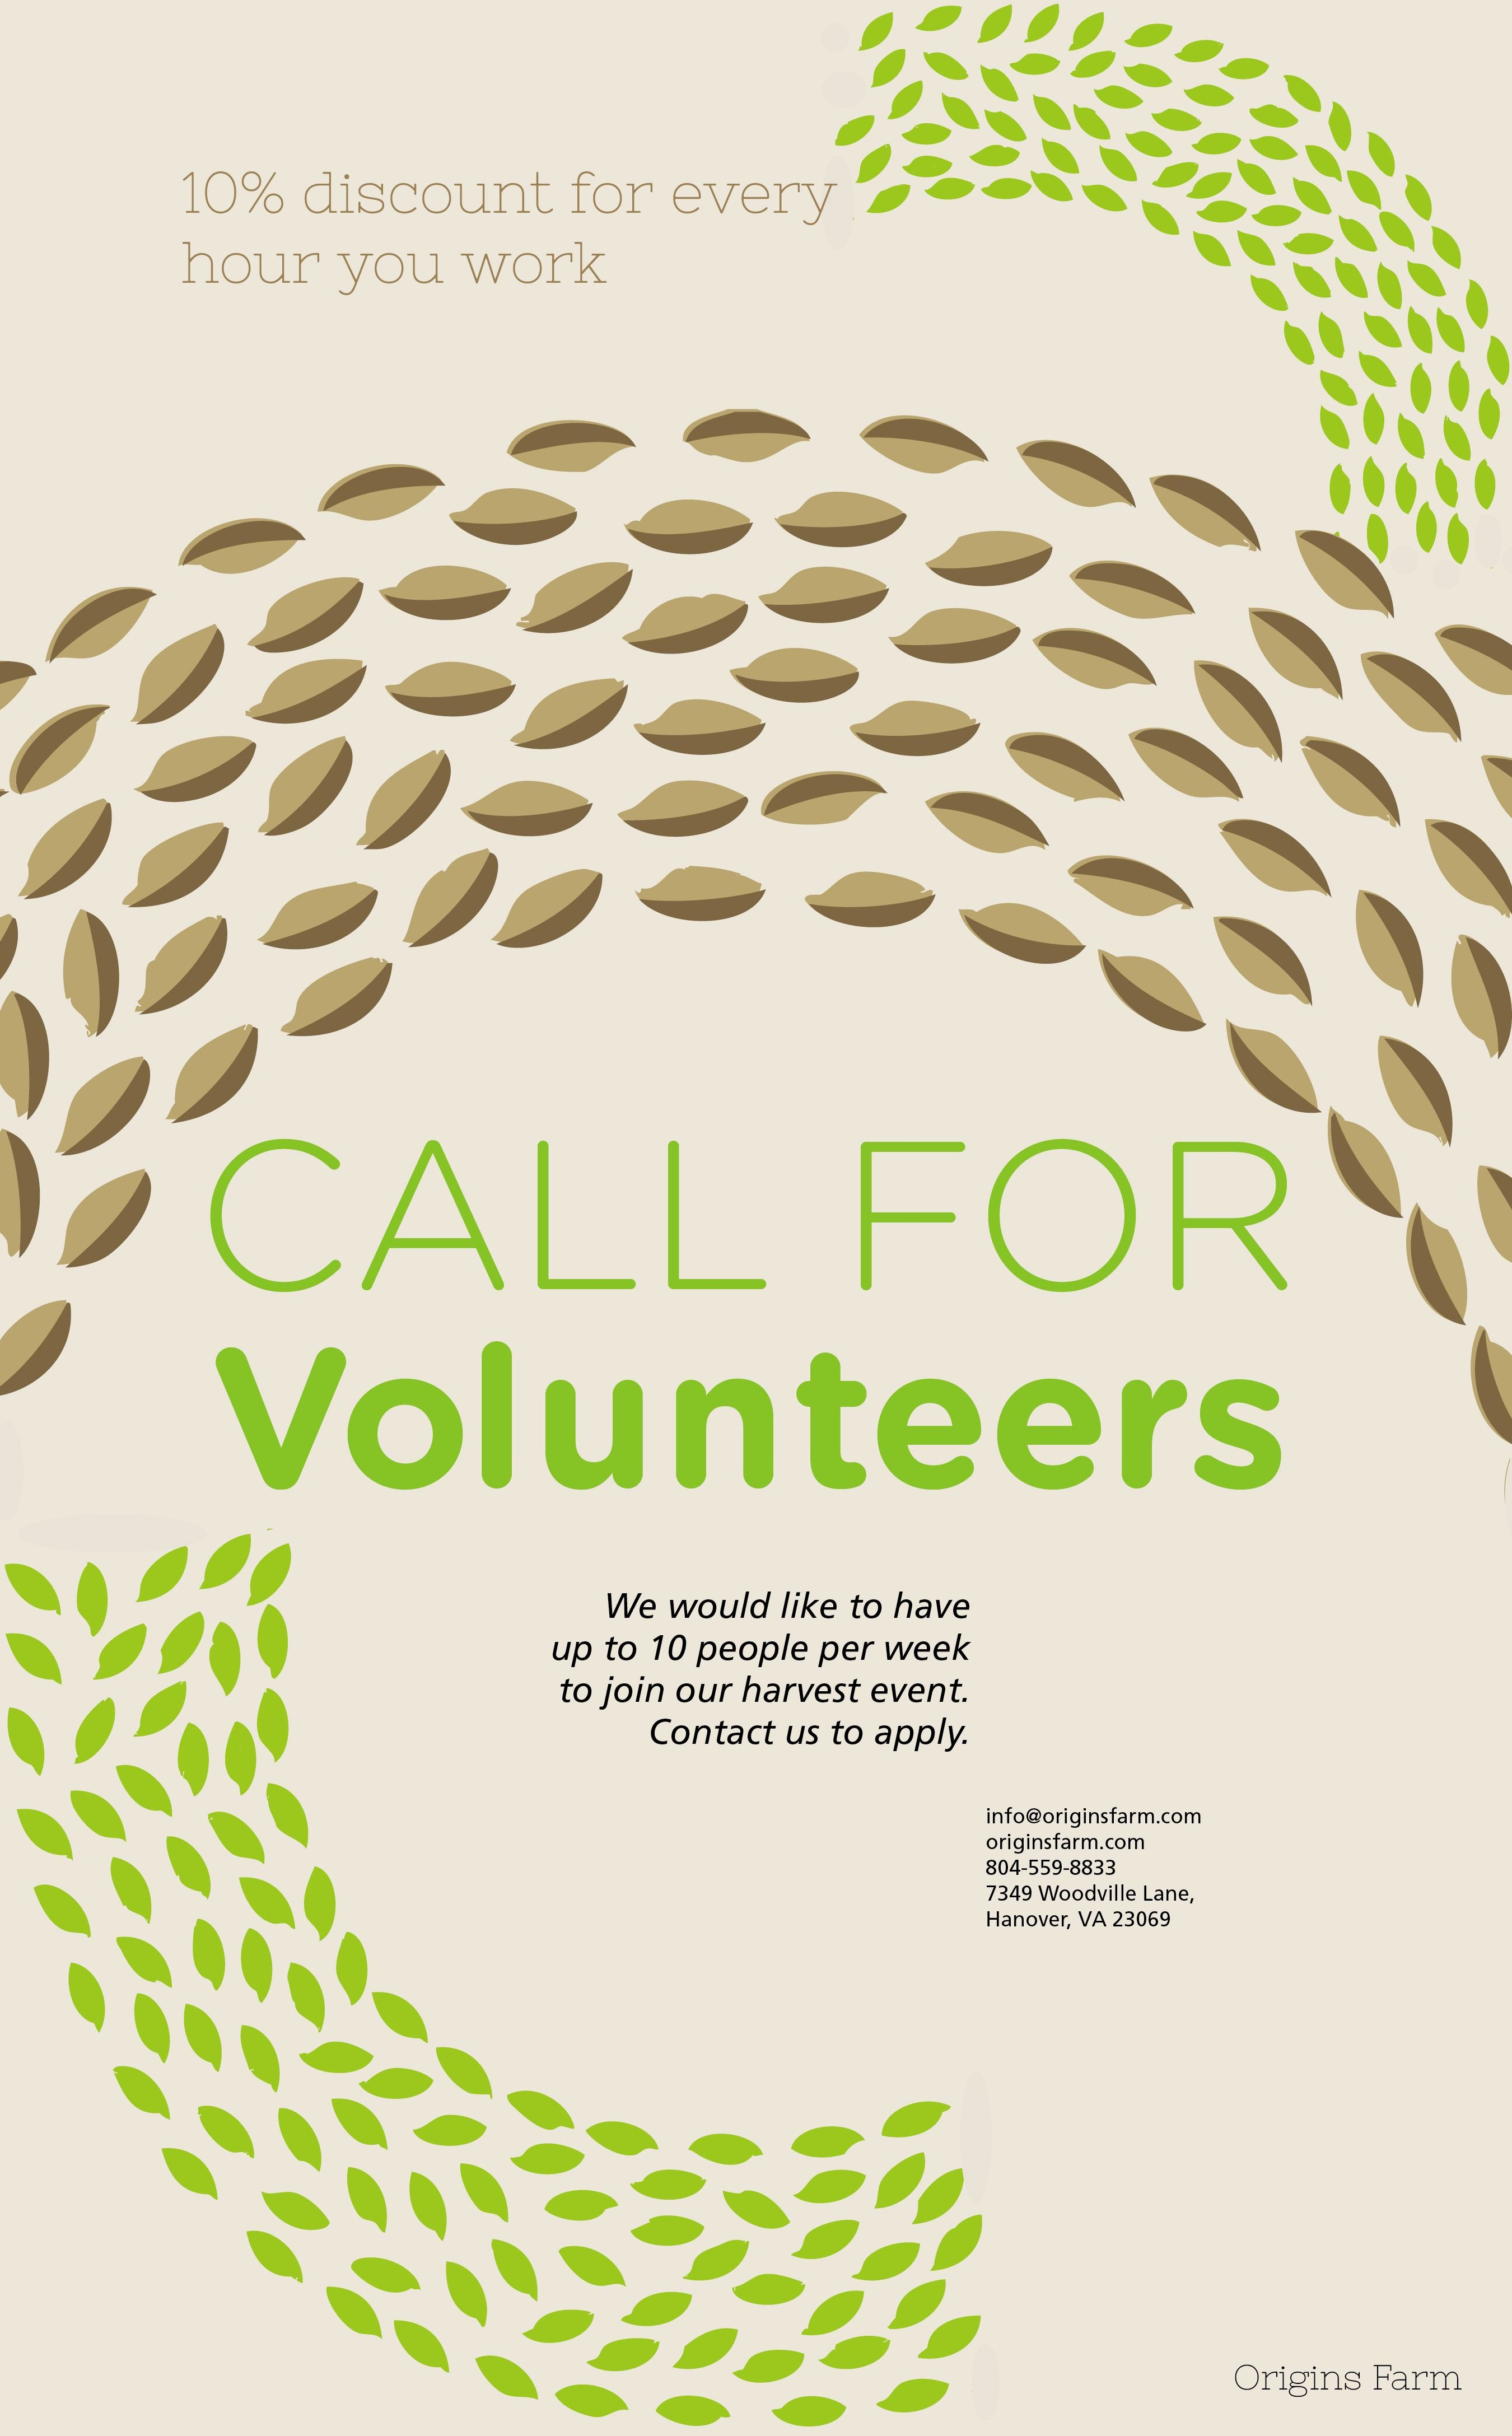 Call for Volunteers Template Fresh origins Farm Volunteer Flyer Graphic